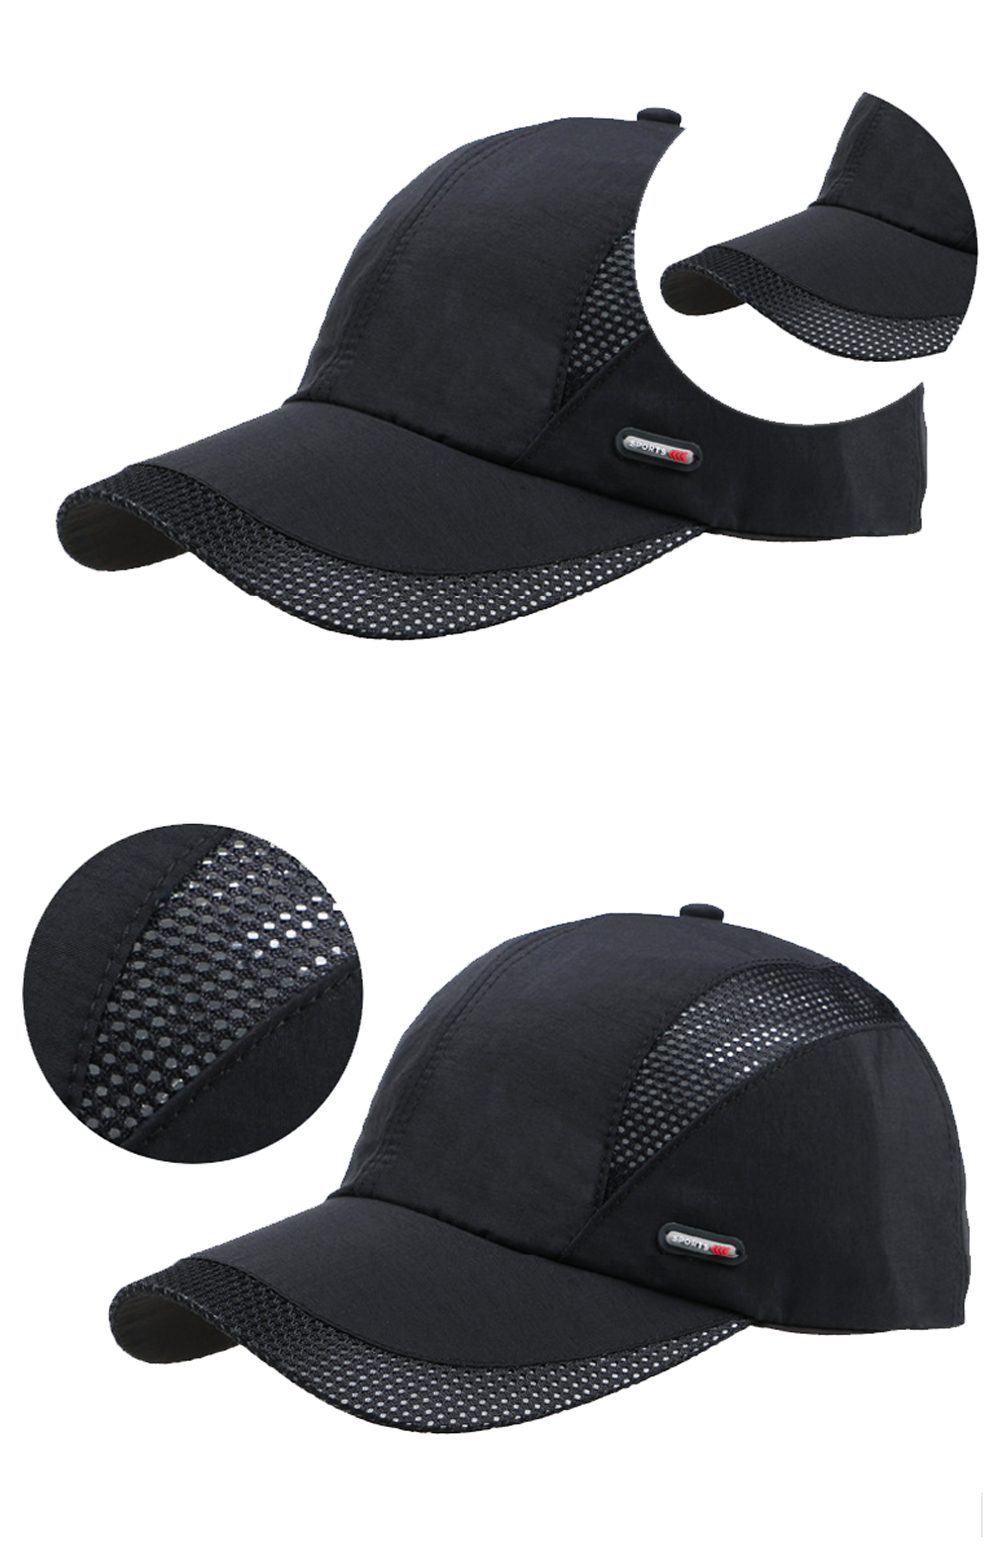 Cool Comfort Breathable Quick Dry Cap - Brim, Wedge Stitching and Front Angle Views